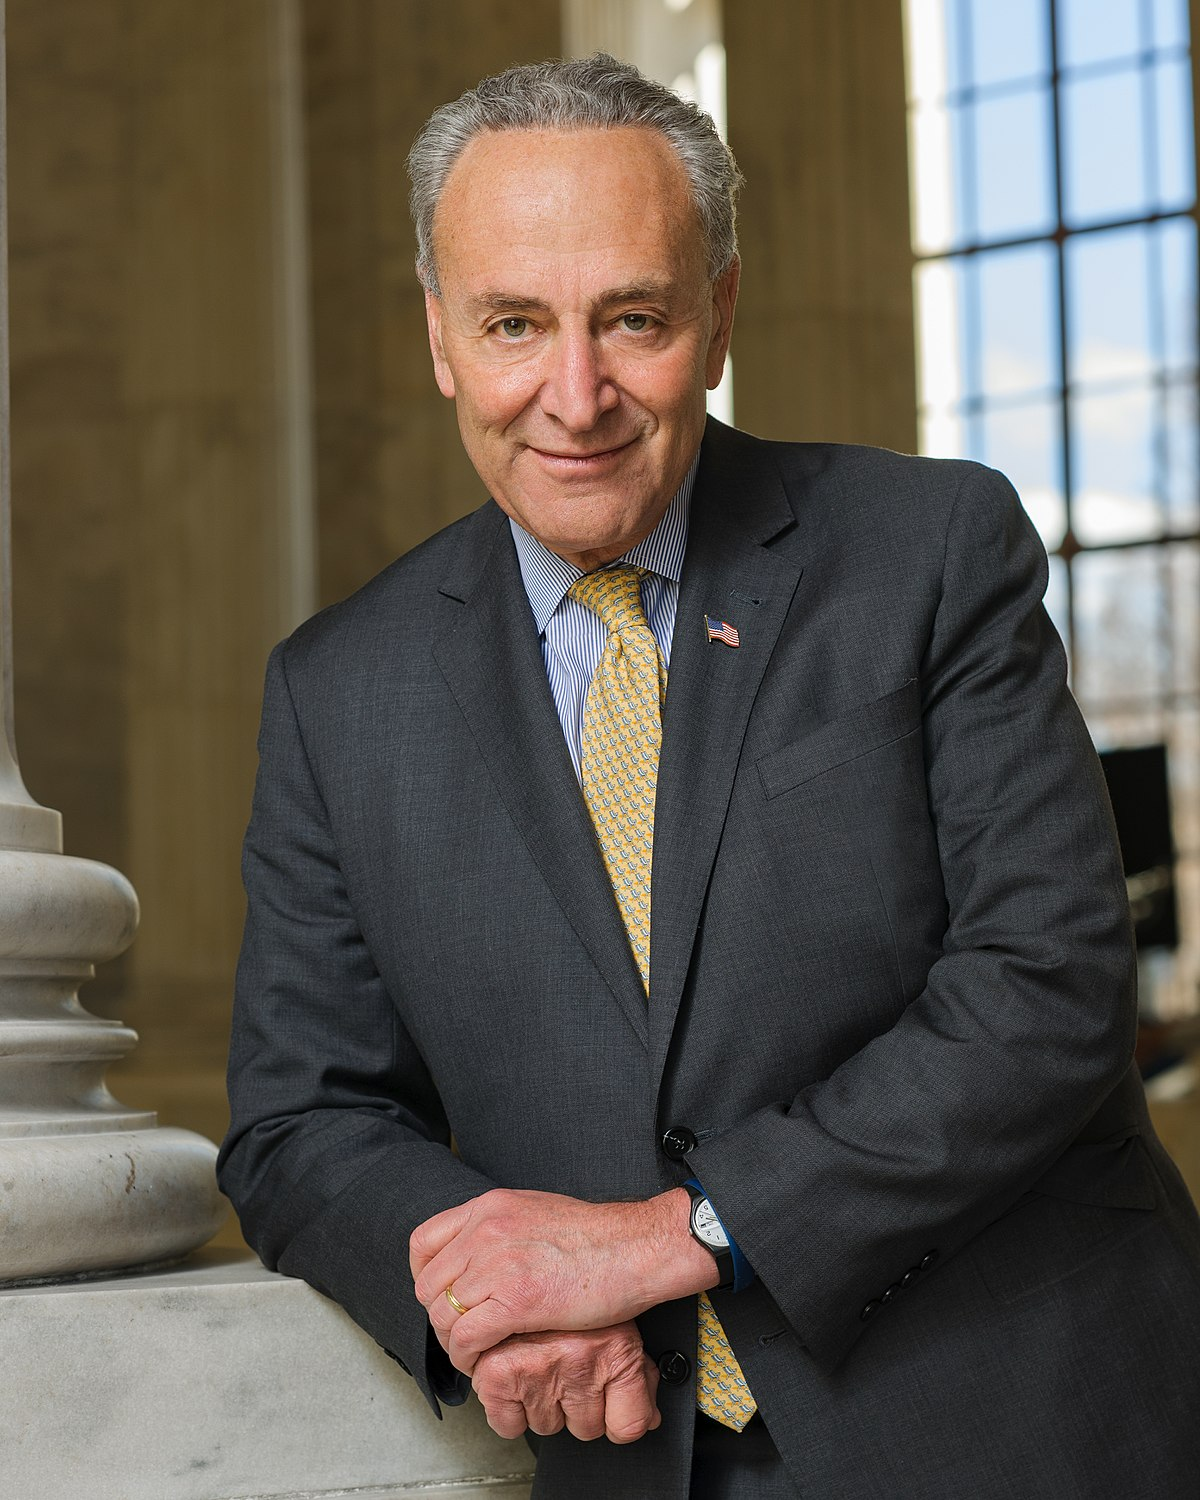 Image result for charles schumer